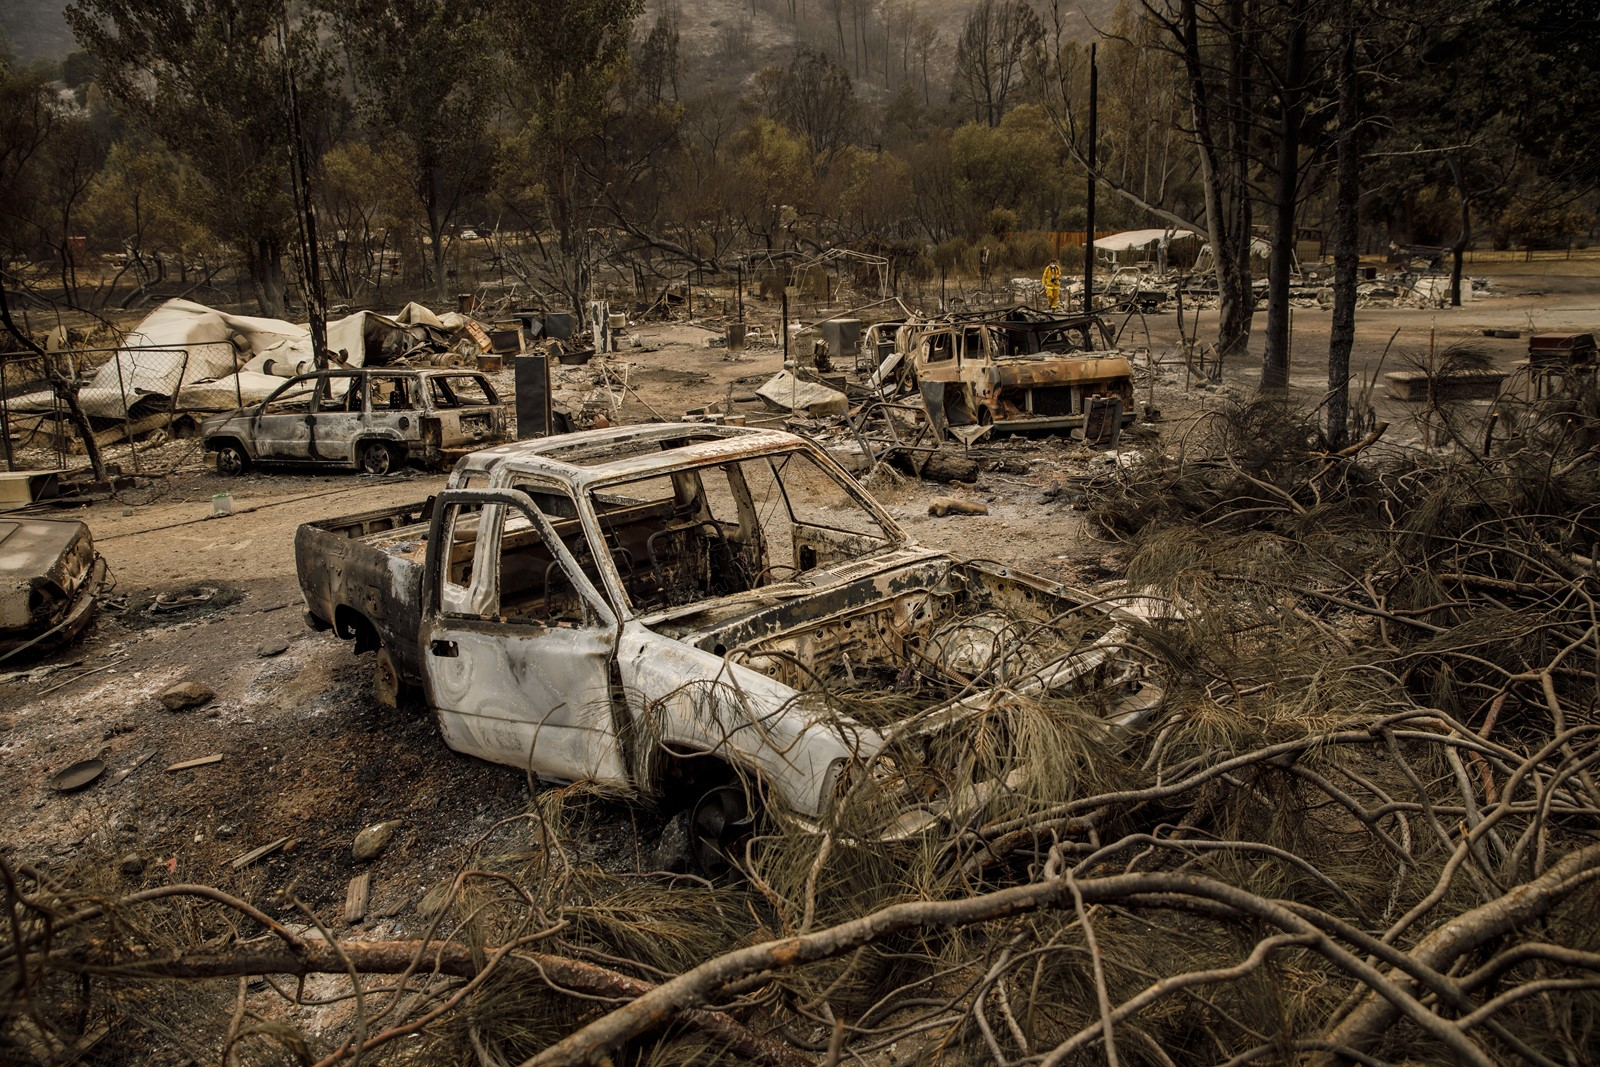 Cars and property burned by the Mendocino Complex fire near Clearlake Oaks, California, on Tuesday. The blaze, which is made up of the Ranch and River fires, has consumed more than 292,000 acres in 12 days. — Photograph: Marcus Yam/Los Angeles Times.